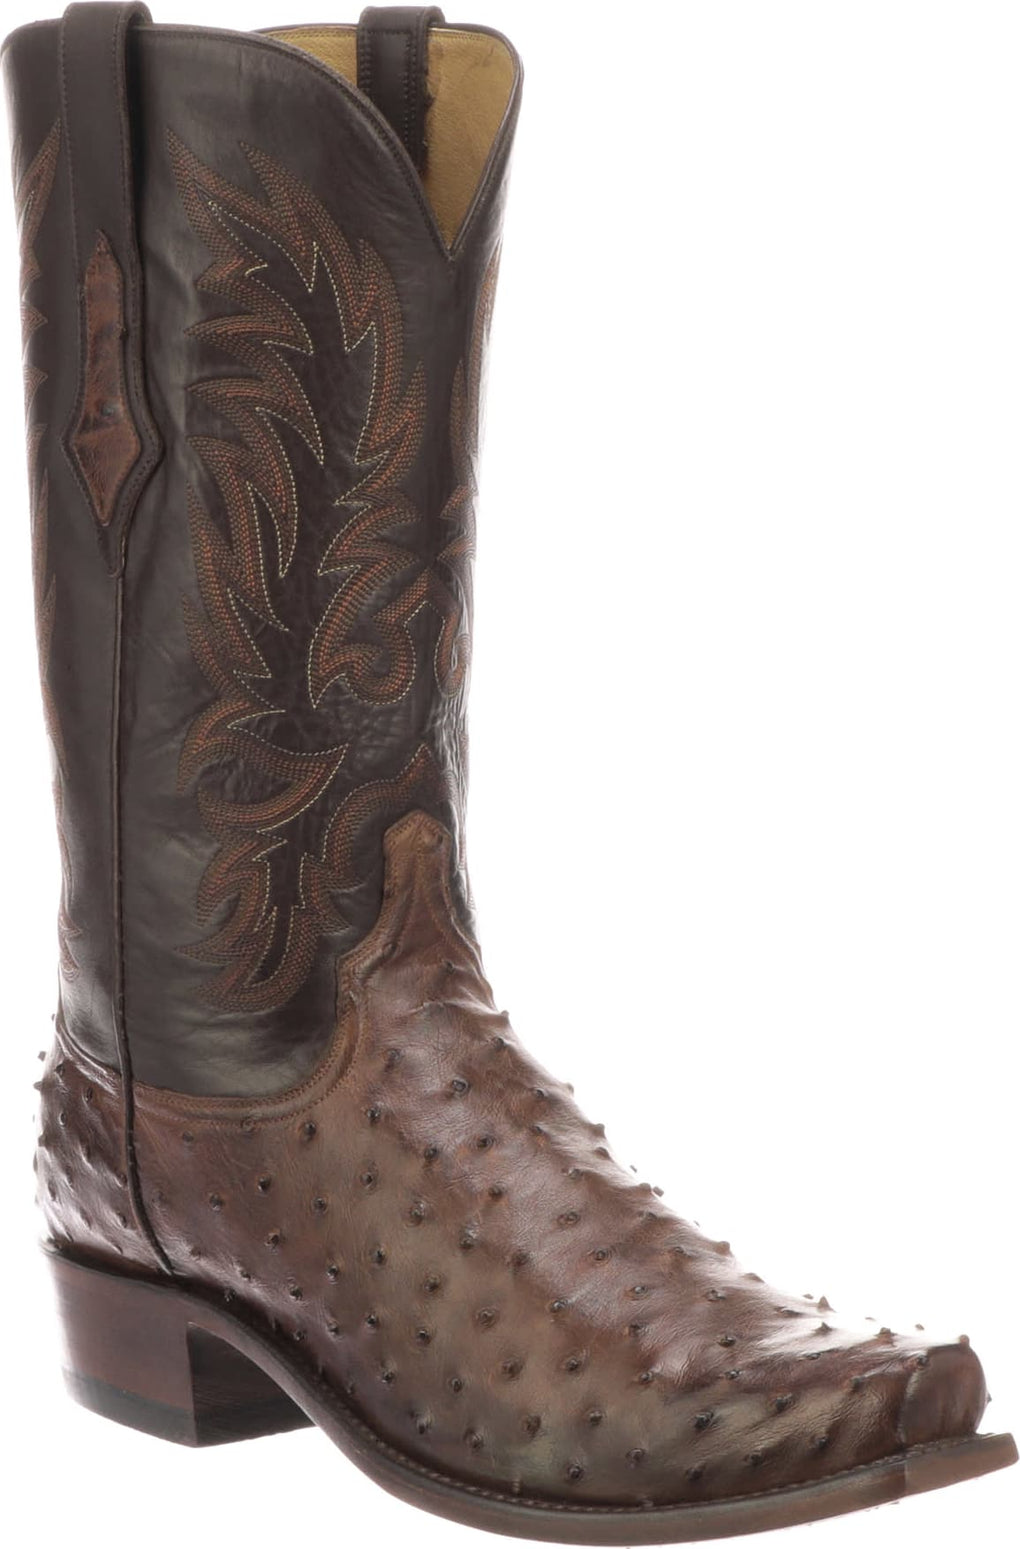 MEN'S LUCCHESE ELGIN - ANTIQUE CHOCOLATE FULL QUILL OSTRICH BOOTS - El Toro Boots